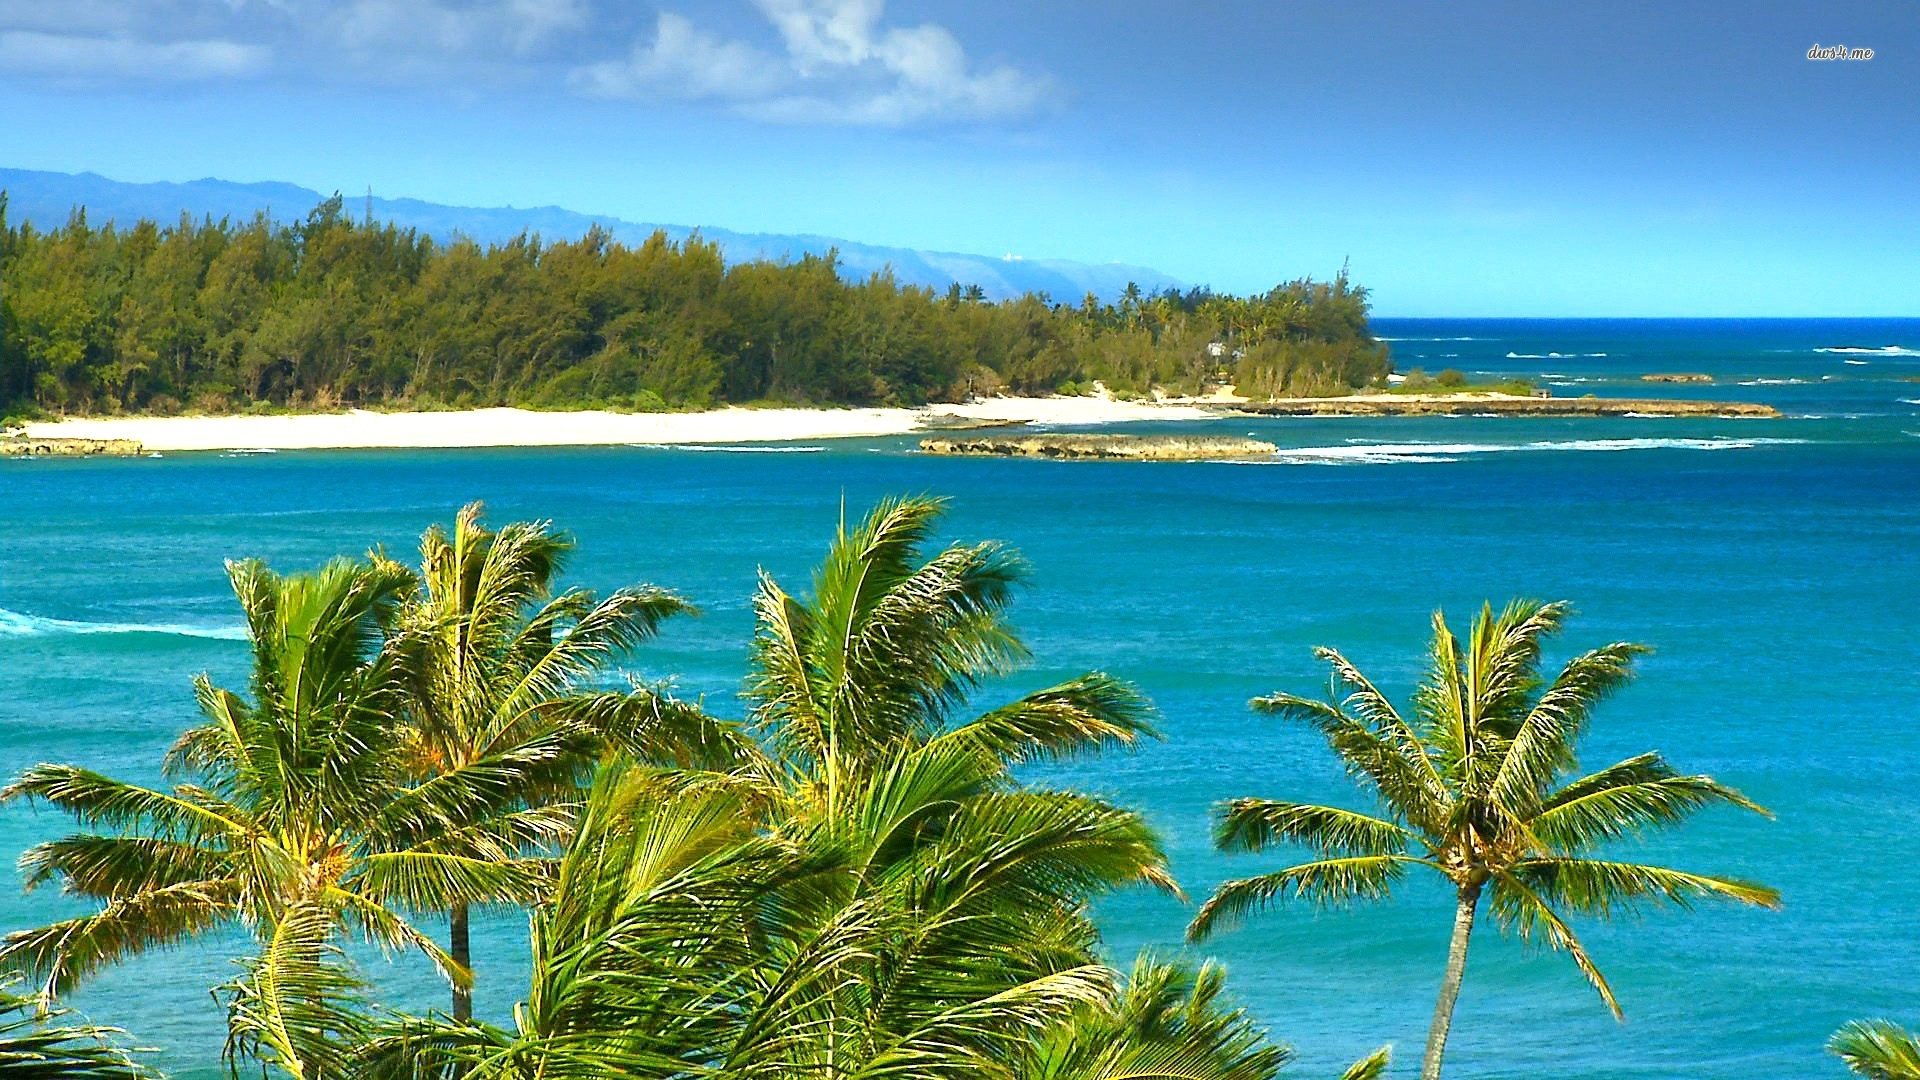 Hawaii Wallpapers, Live Hawaii Wallpapers, NJR51 Hawaii Backgrounds